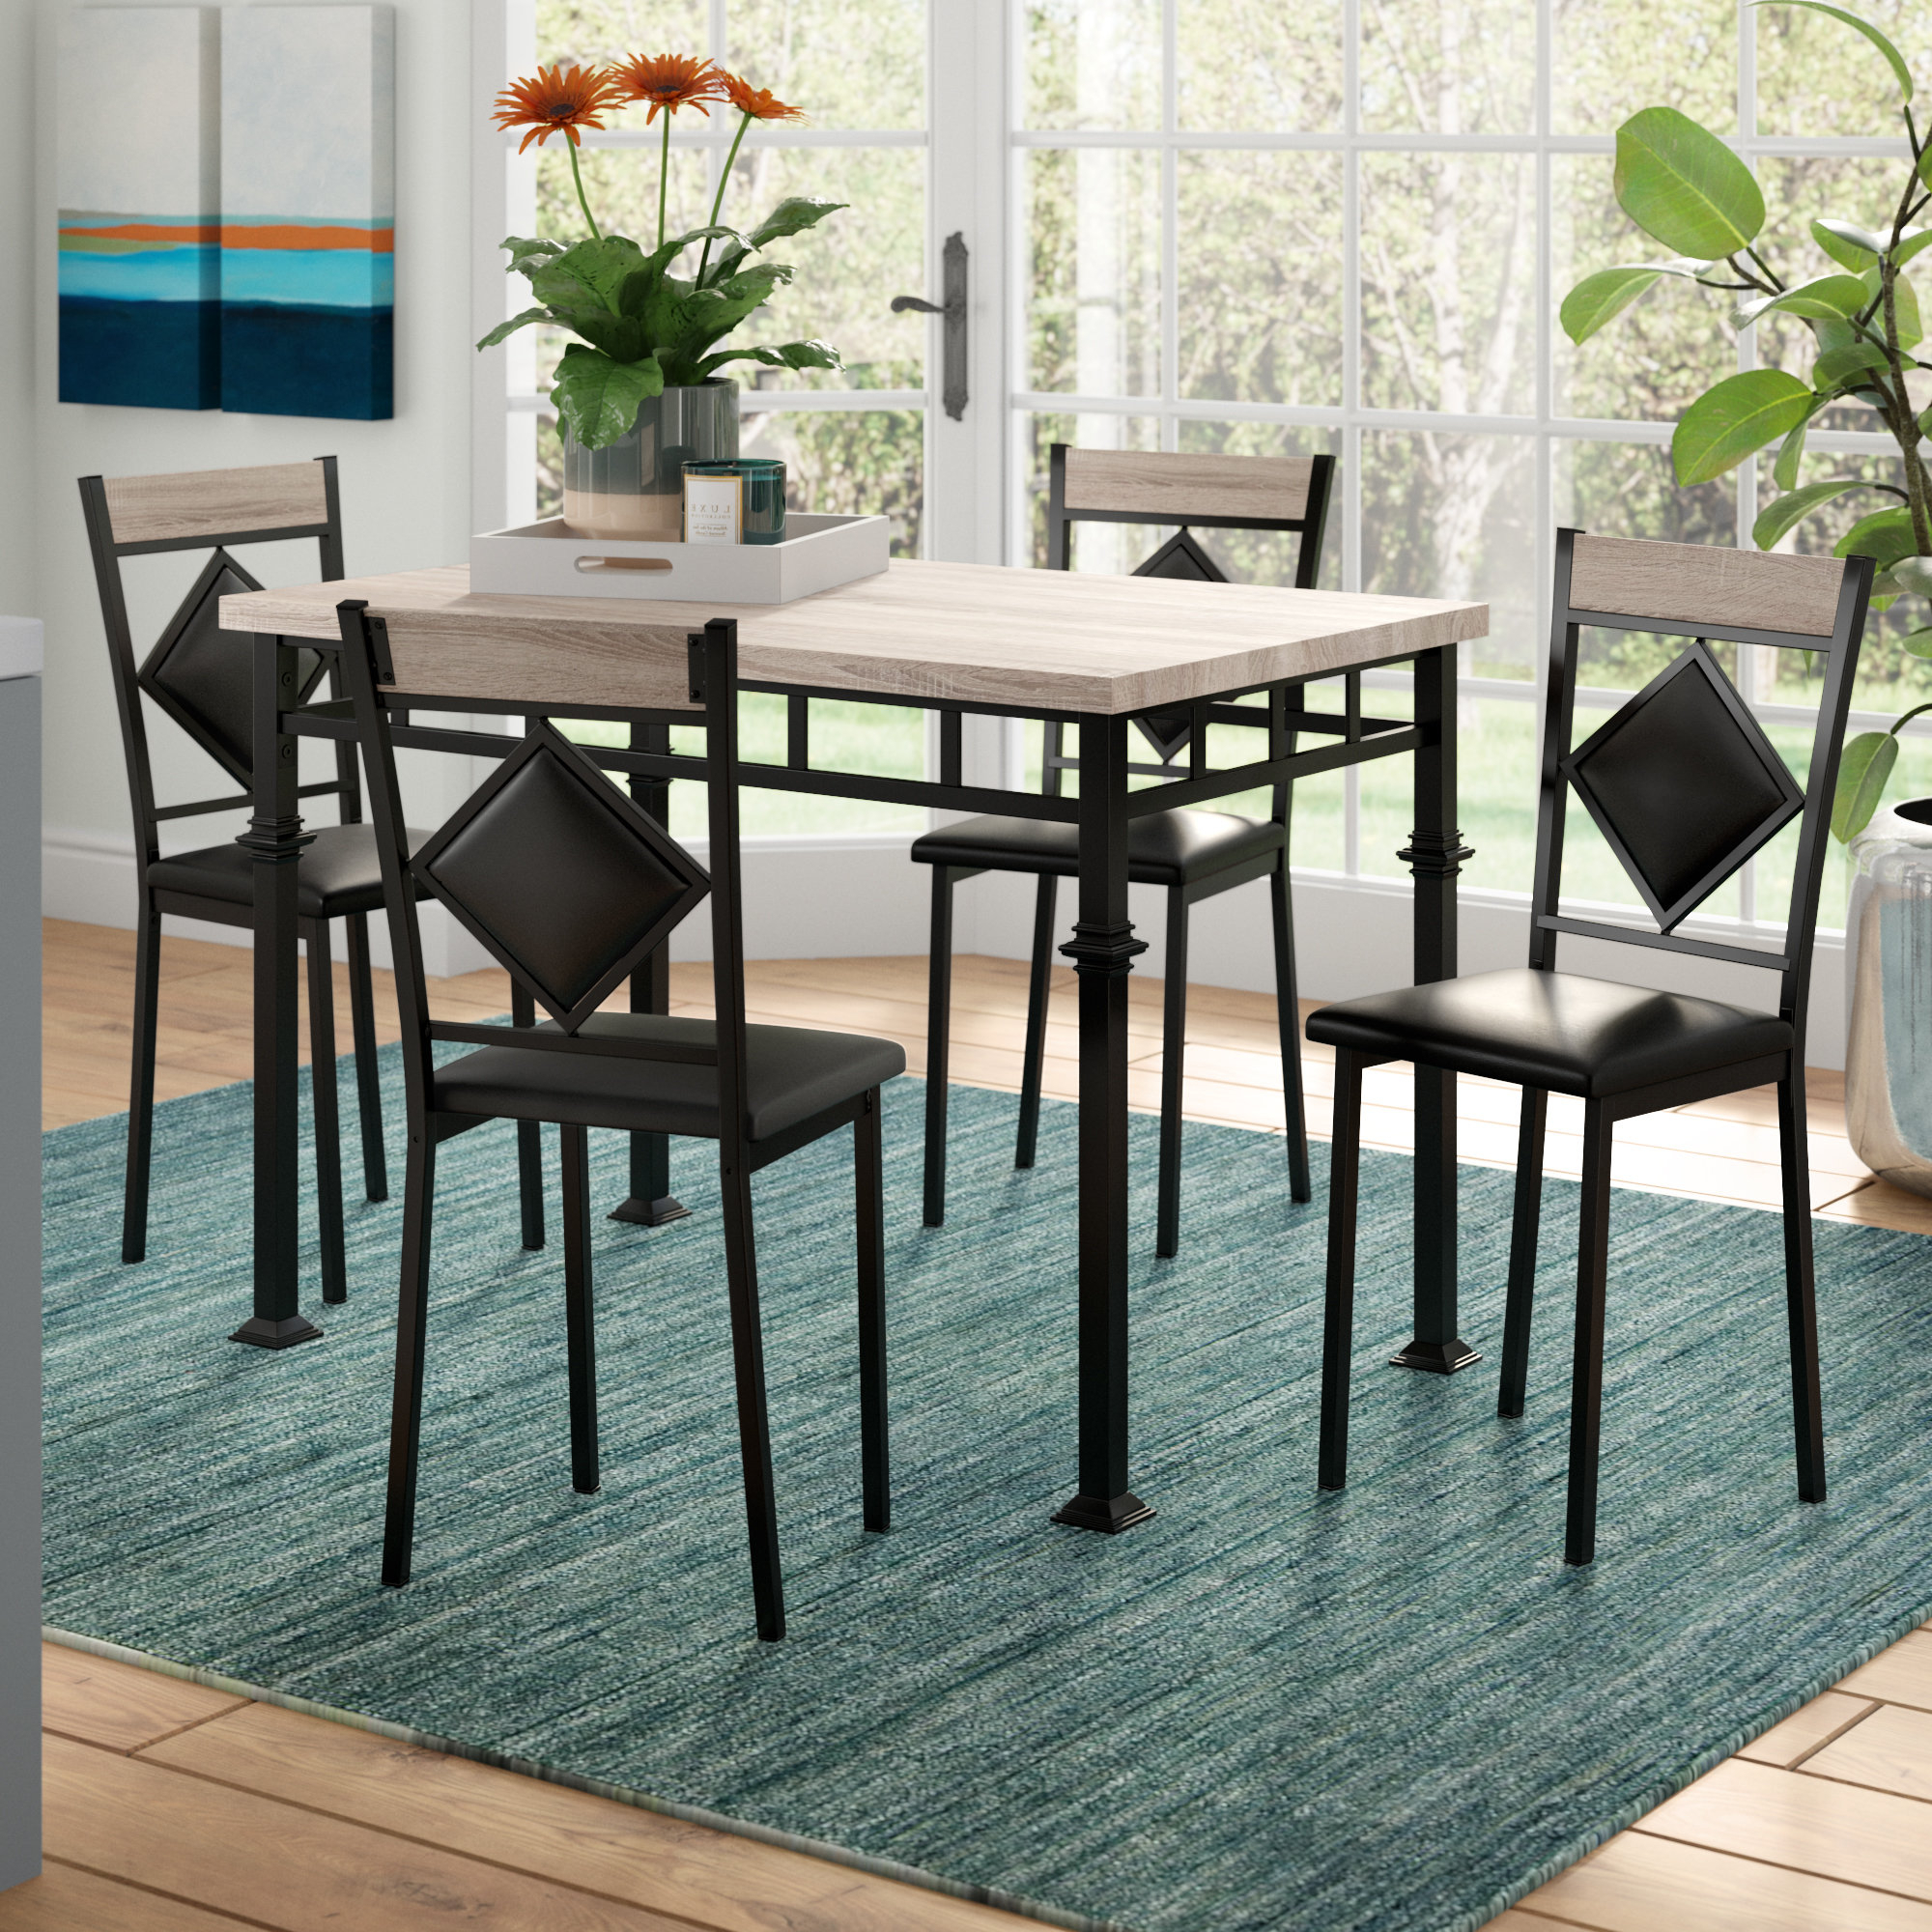 Autberry 5 Piece Dining Sets Pertaining To Trendy Tavarozzi 5 Piece Dining Set (Gallery 4 of 20)